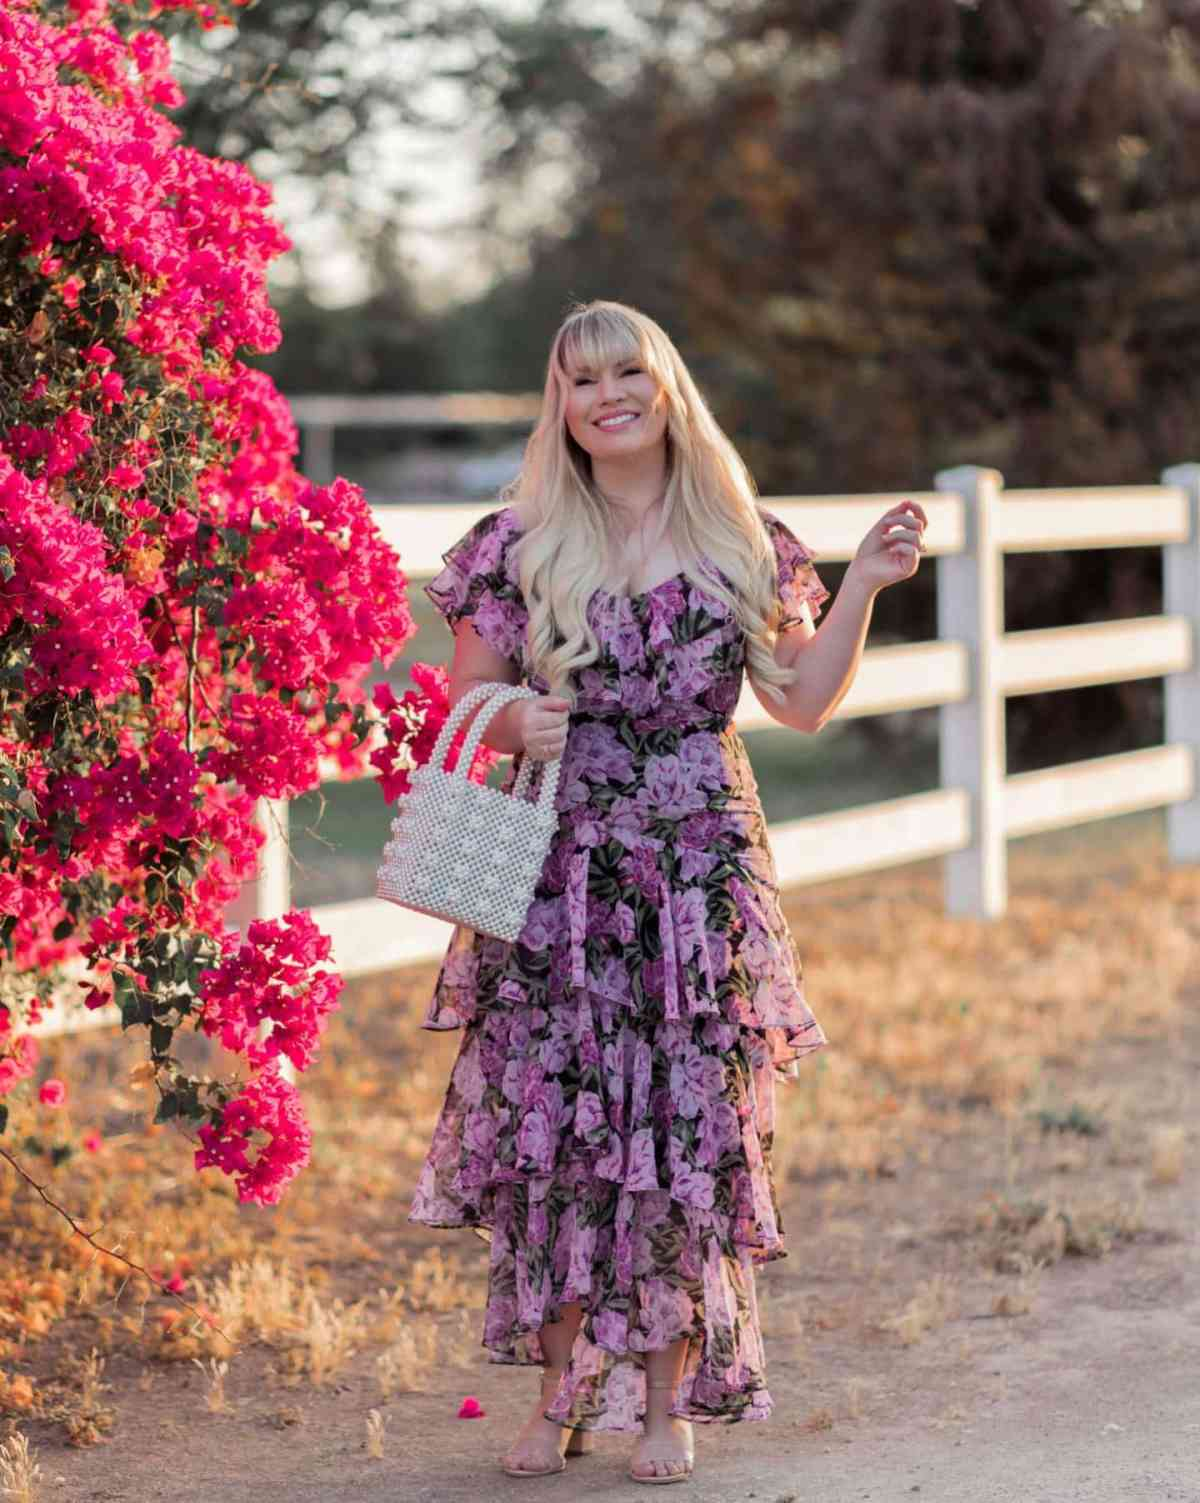 Lizzie in floral chiffon tiered dress on an unpaved road